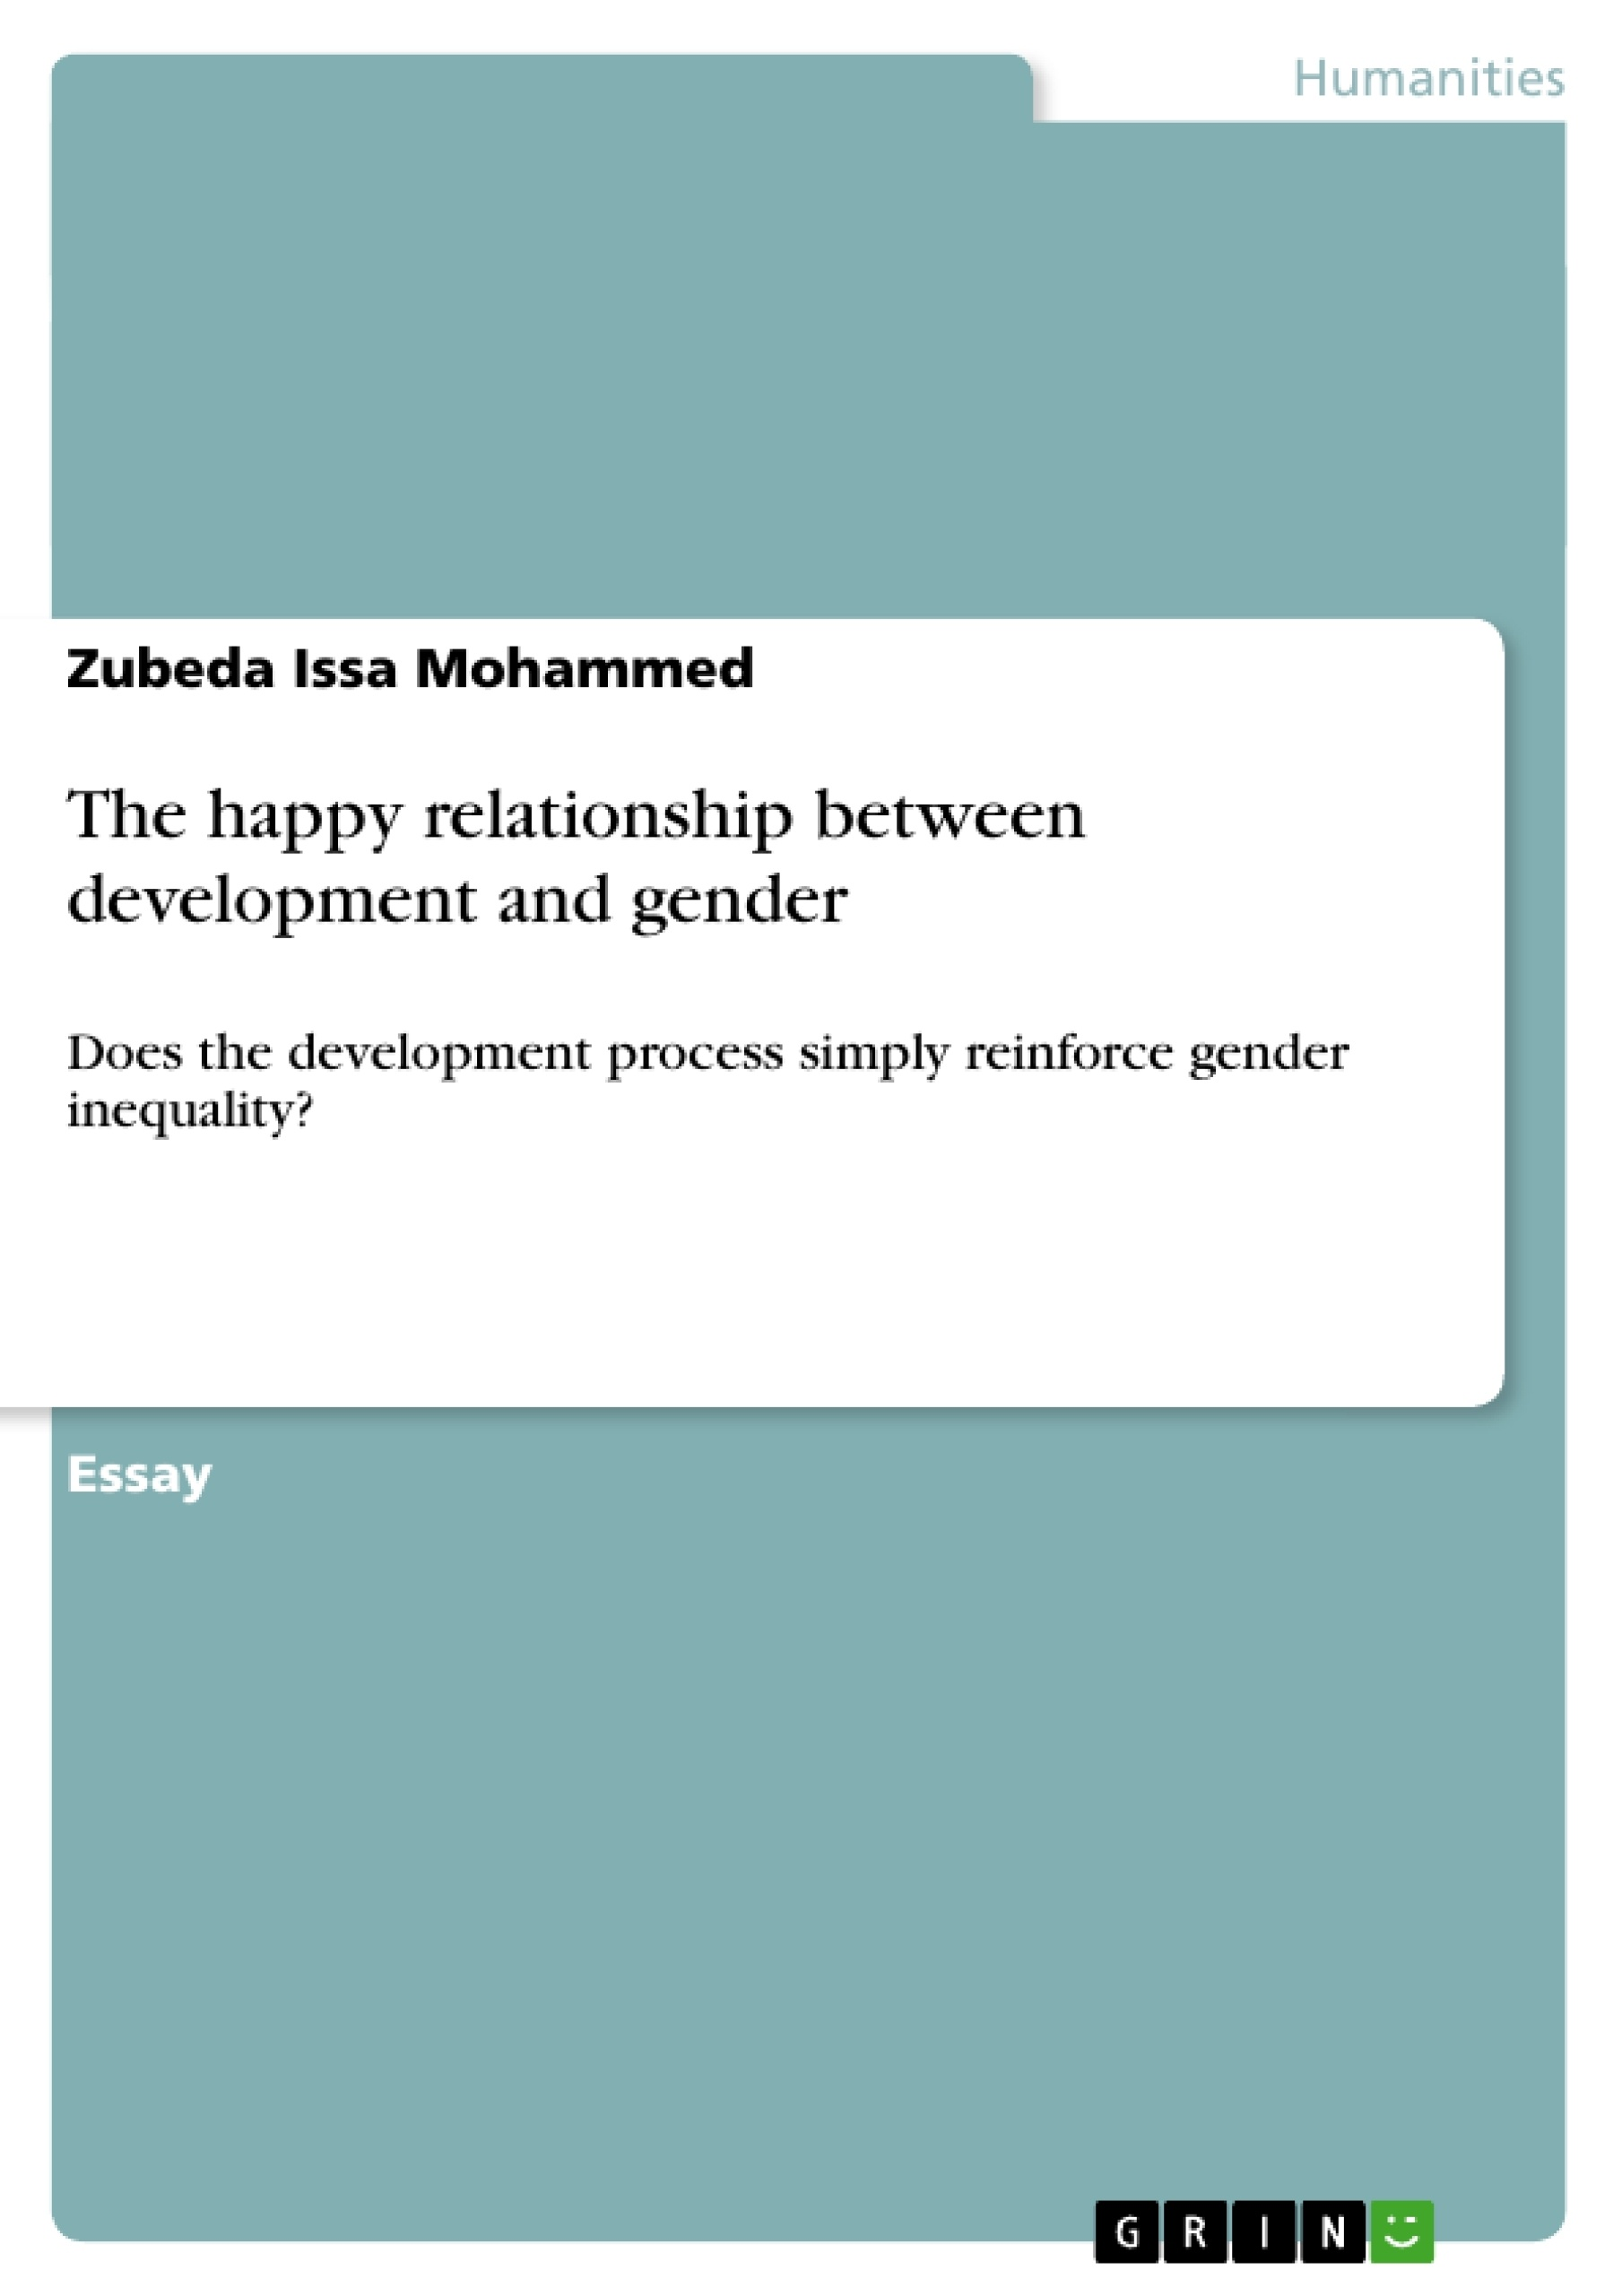 essay on gender inequality the happy relationship between  the happy relationship between development and gender publish the happy relationship between development and gender publish